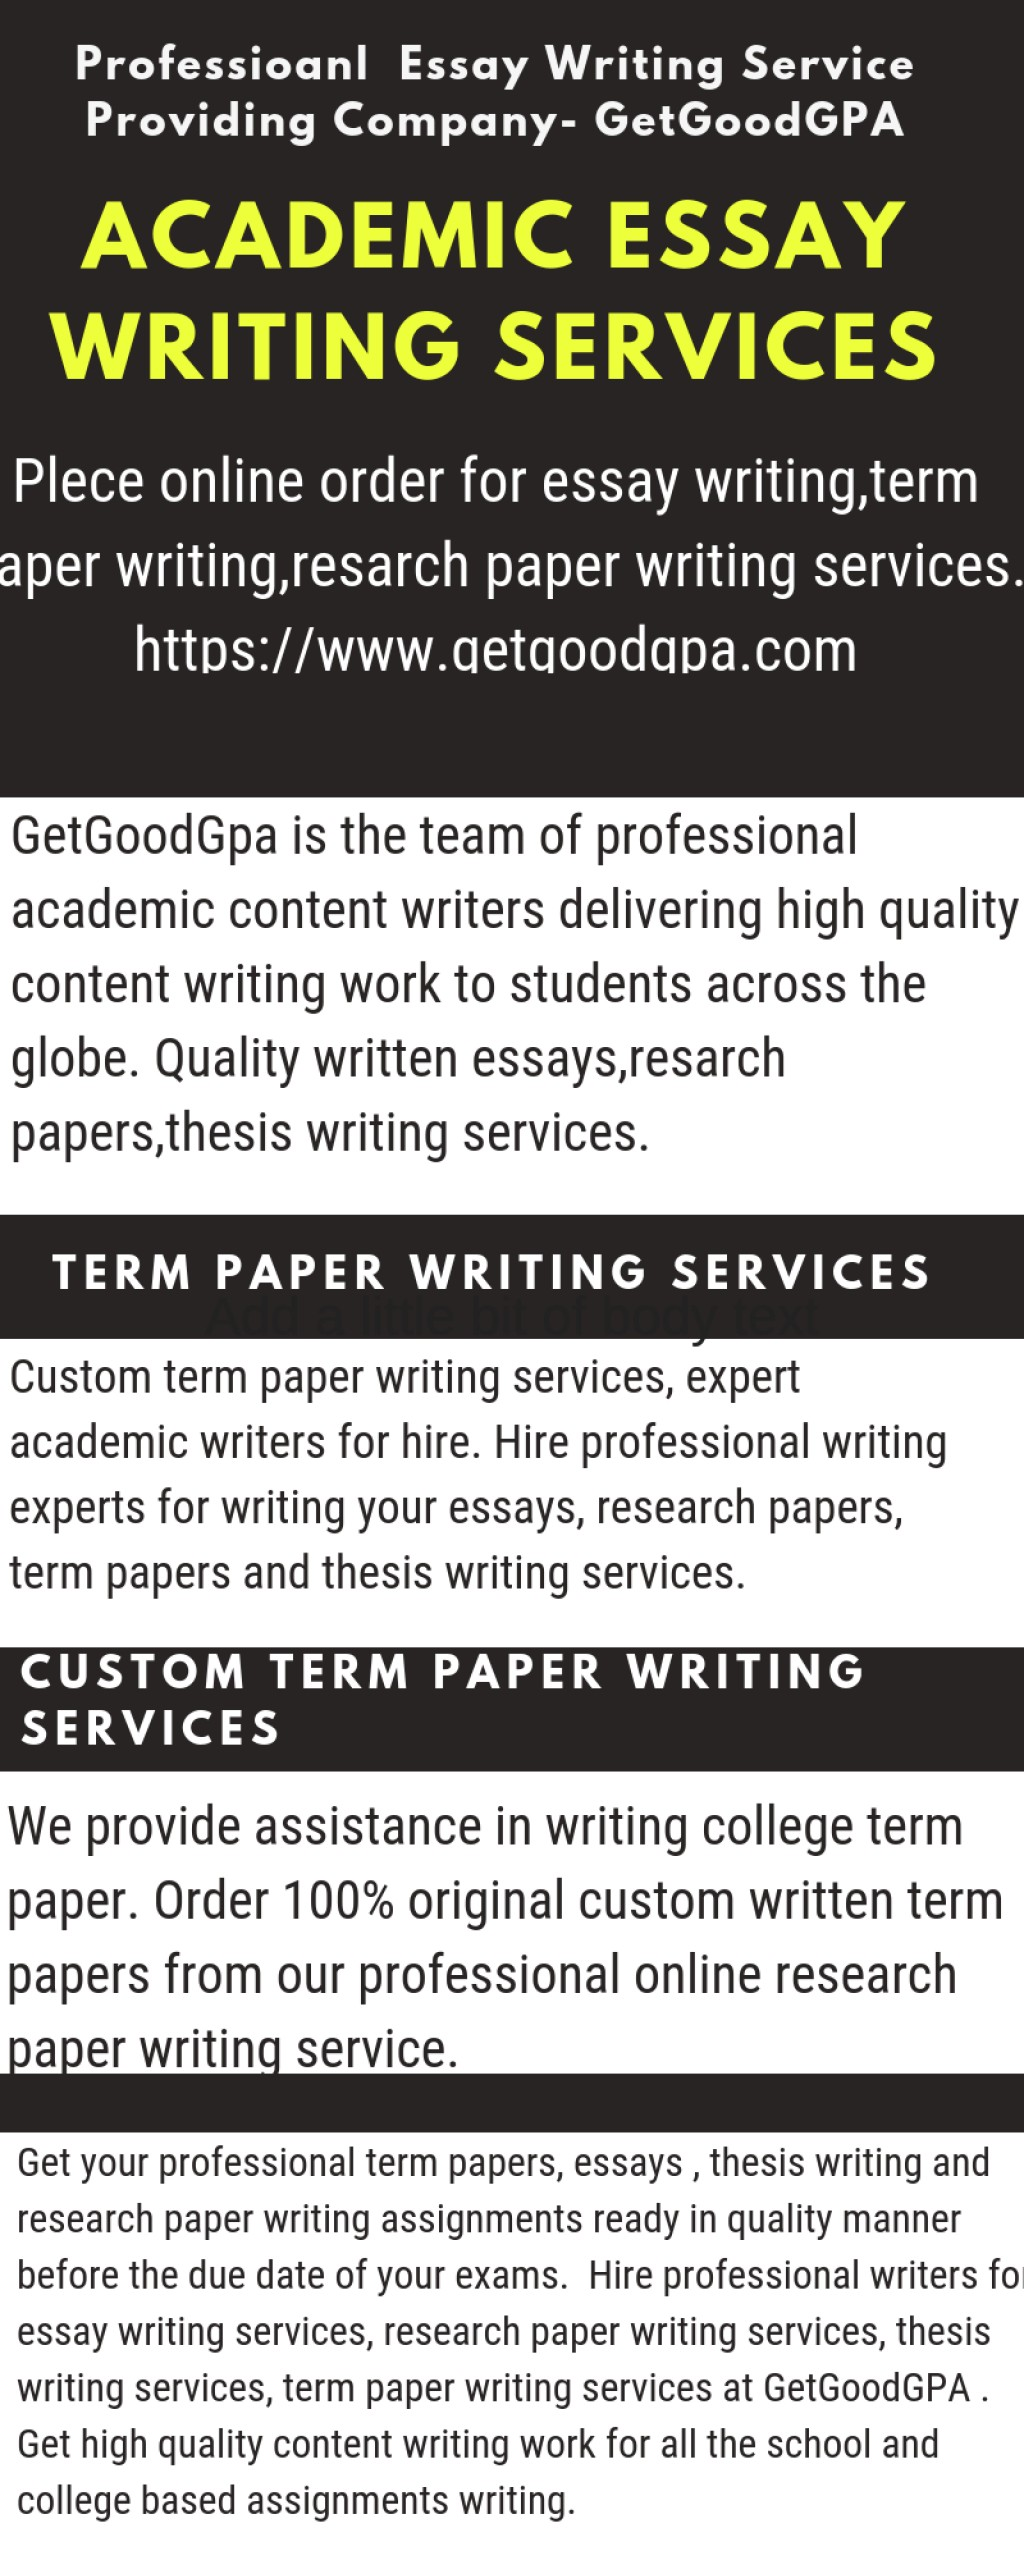 015 Research Paper Custom Writing Dreaded Services Best Academic Service Thesis Large